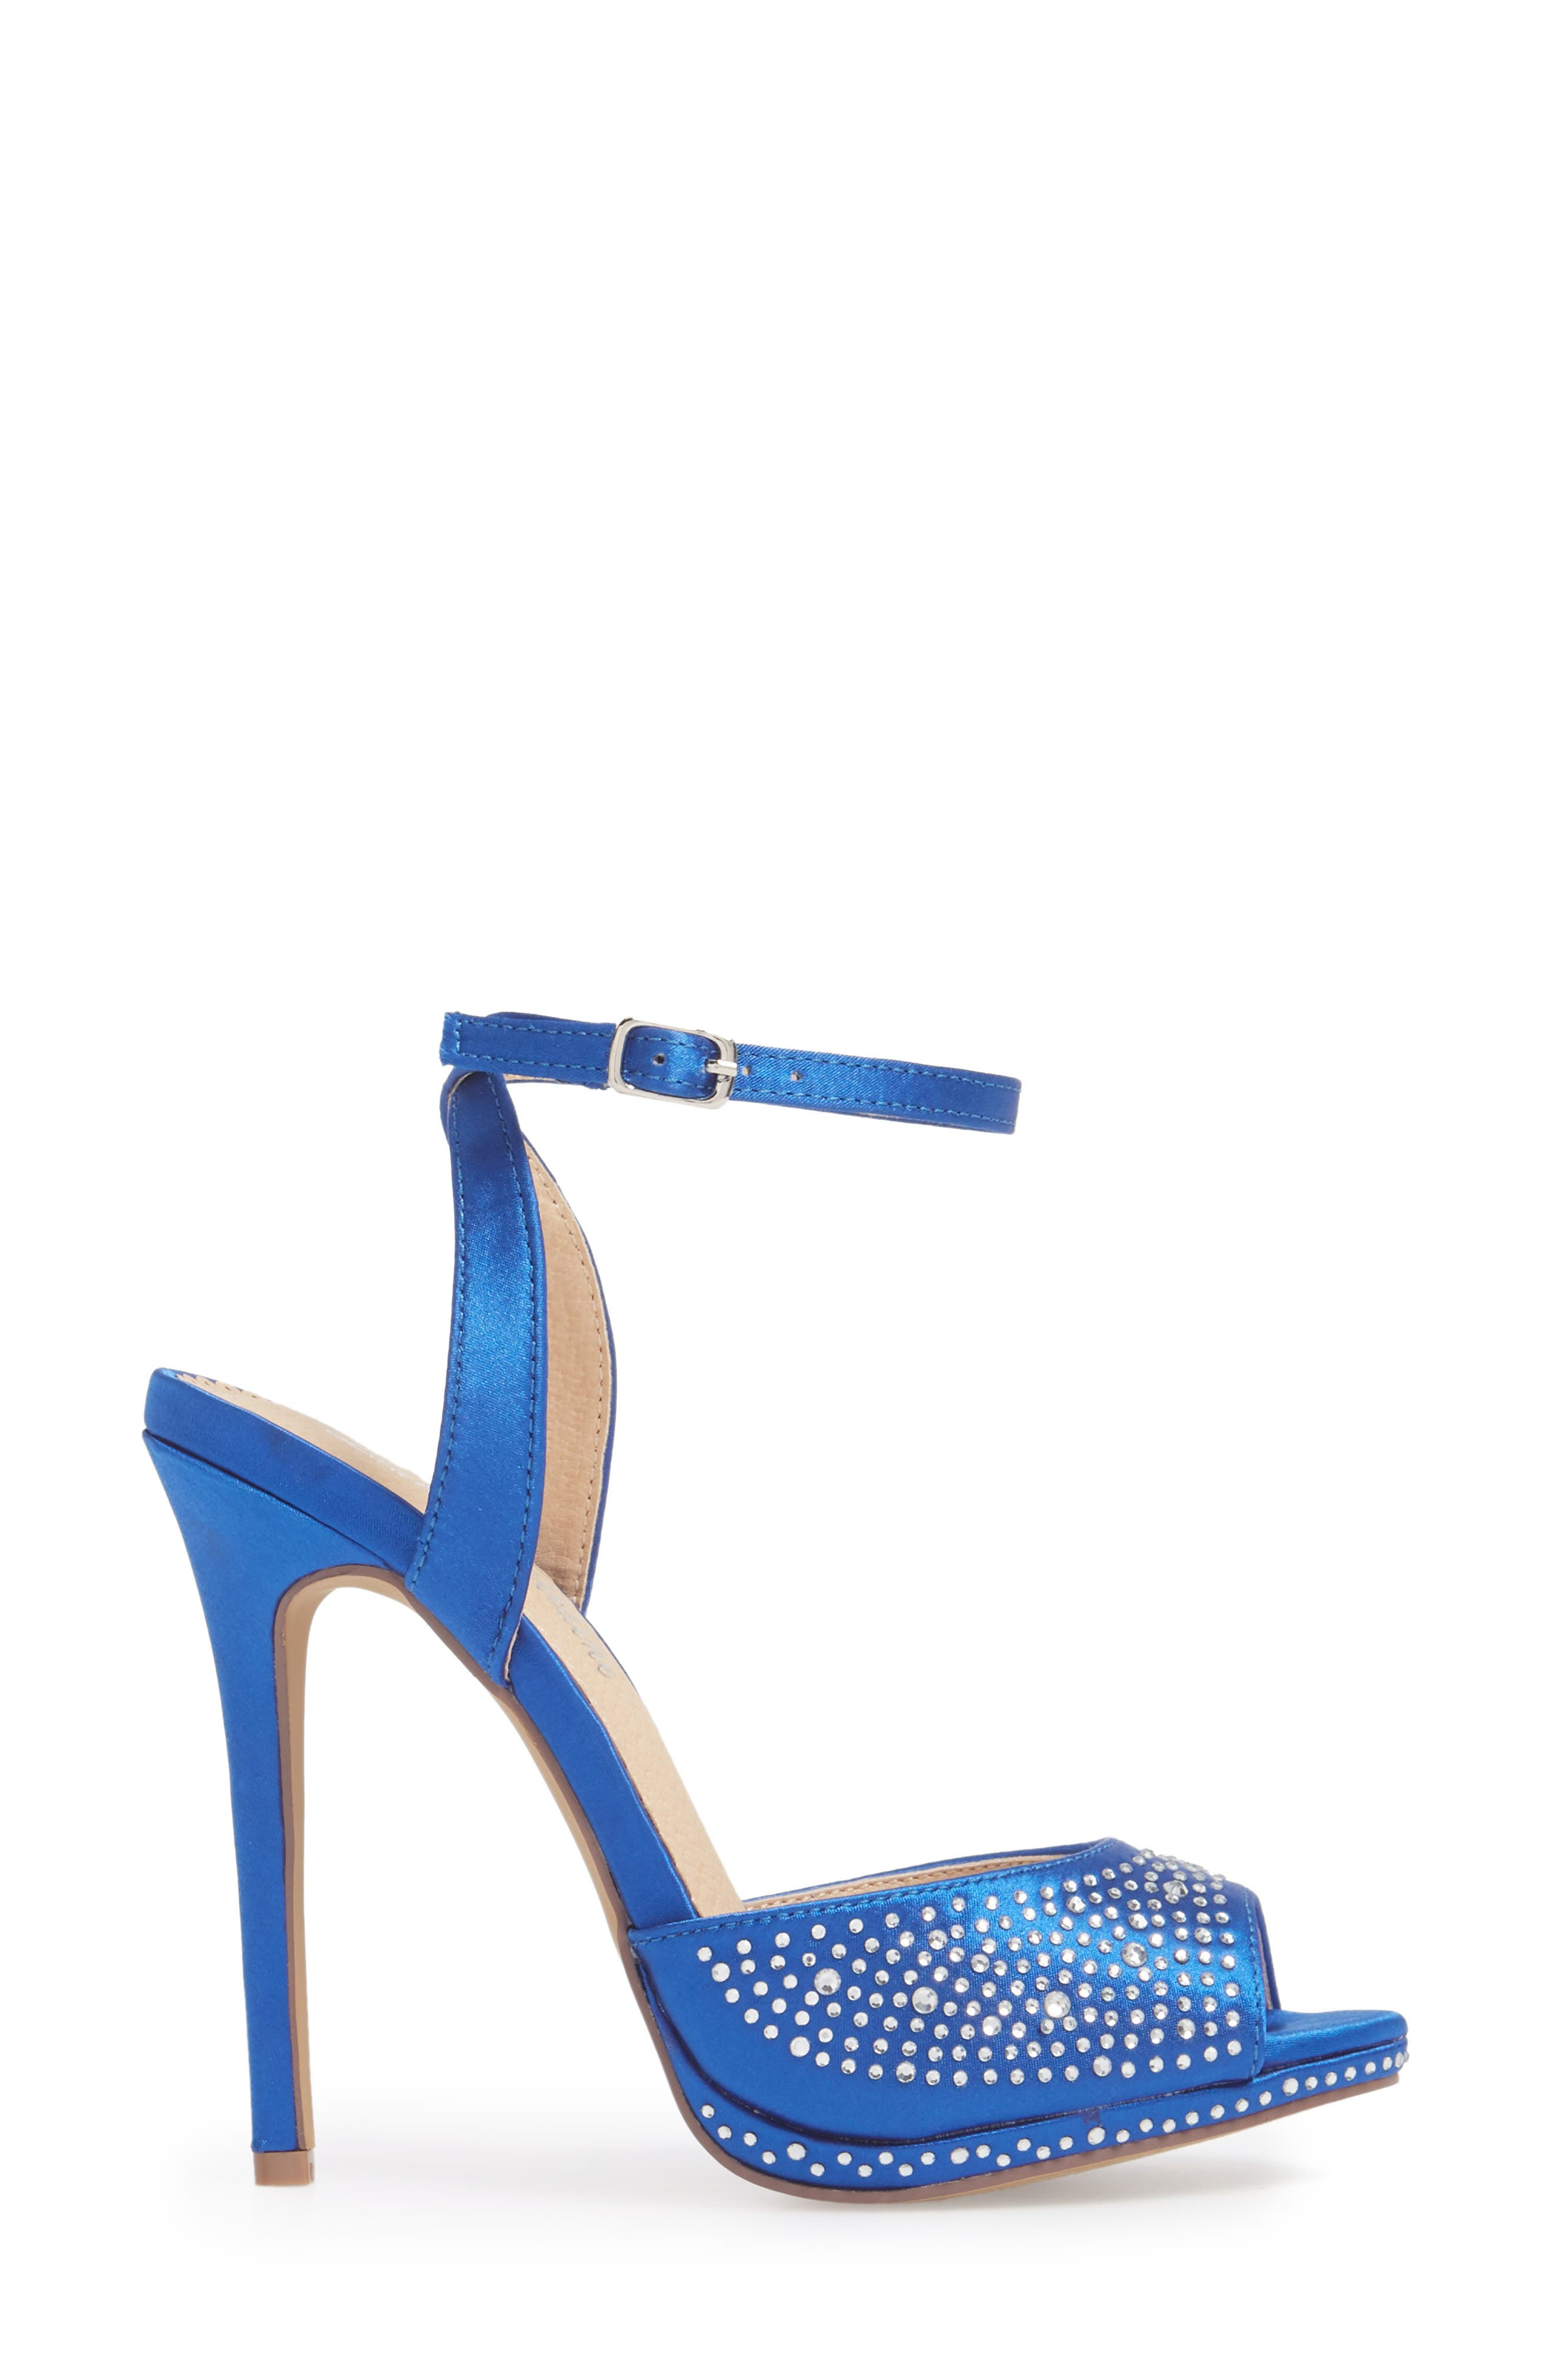 Tavi Sandal,                             Alternate thumbnail 3, color,                             Royal Blue Fabric